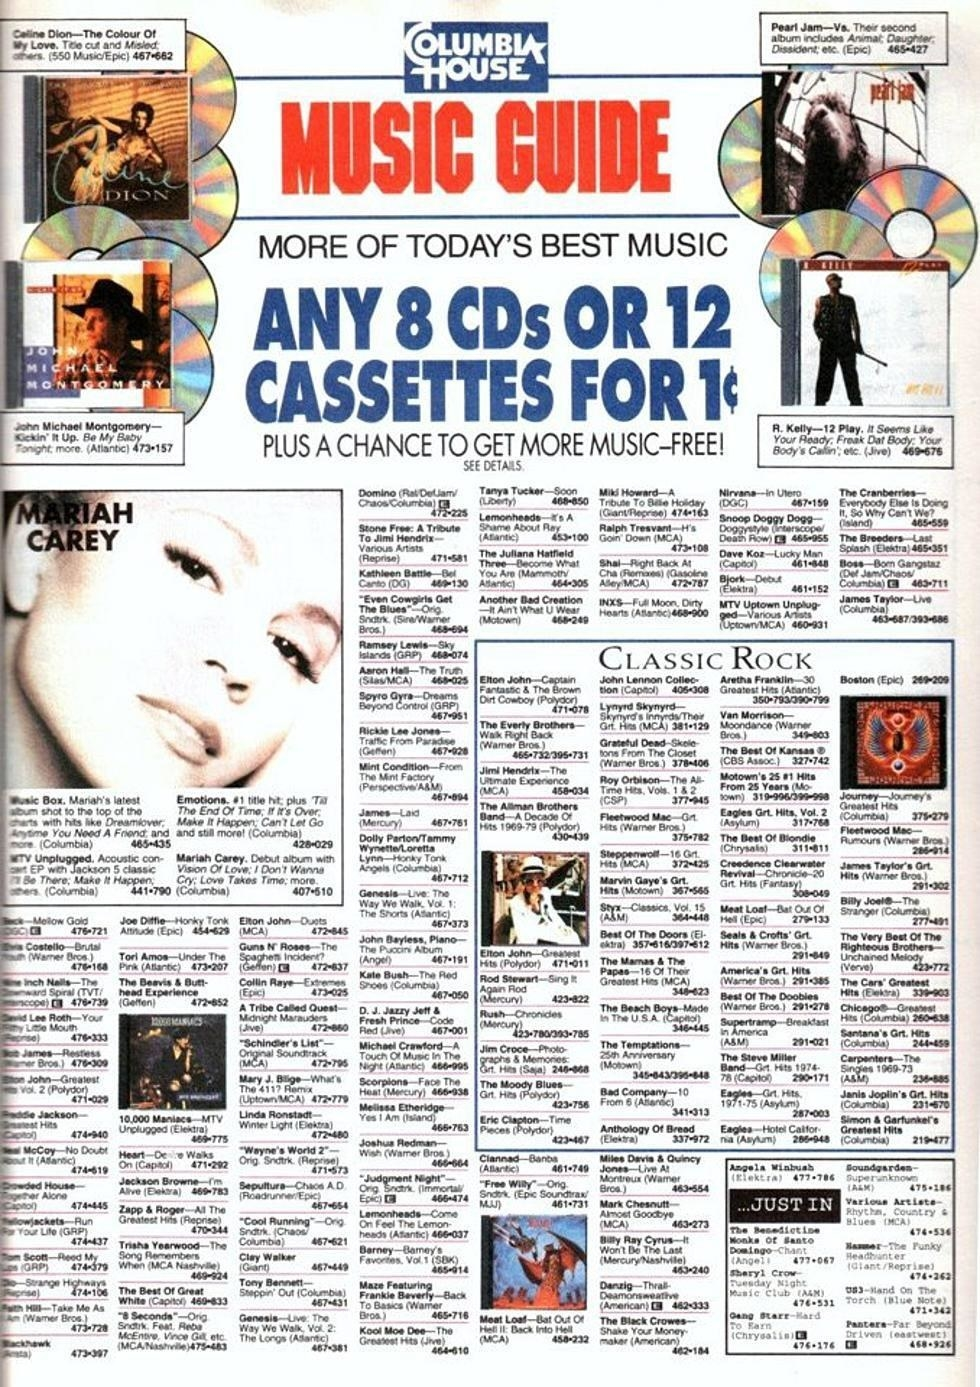 A order form for CDs for Columbia House.